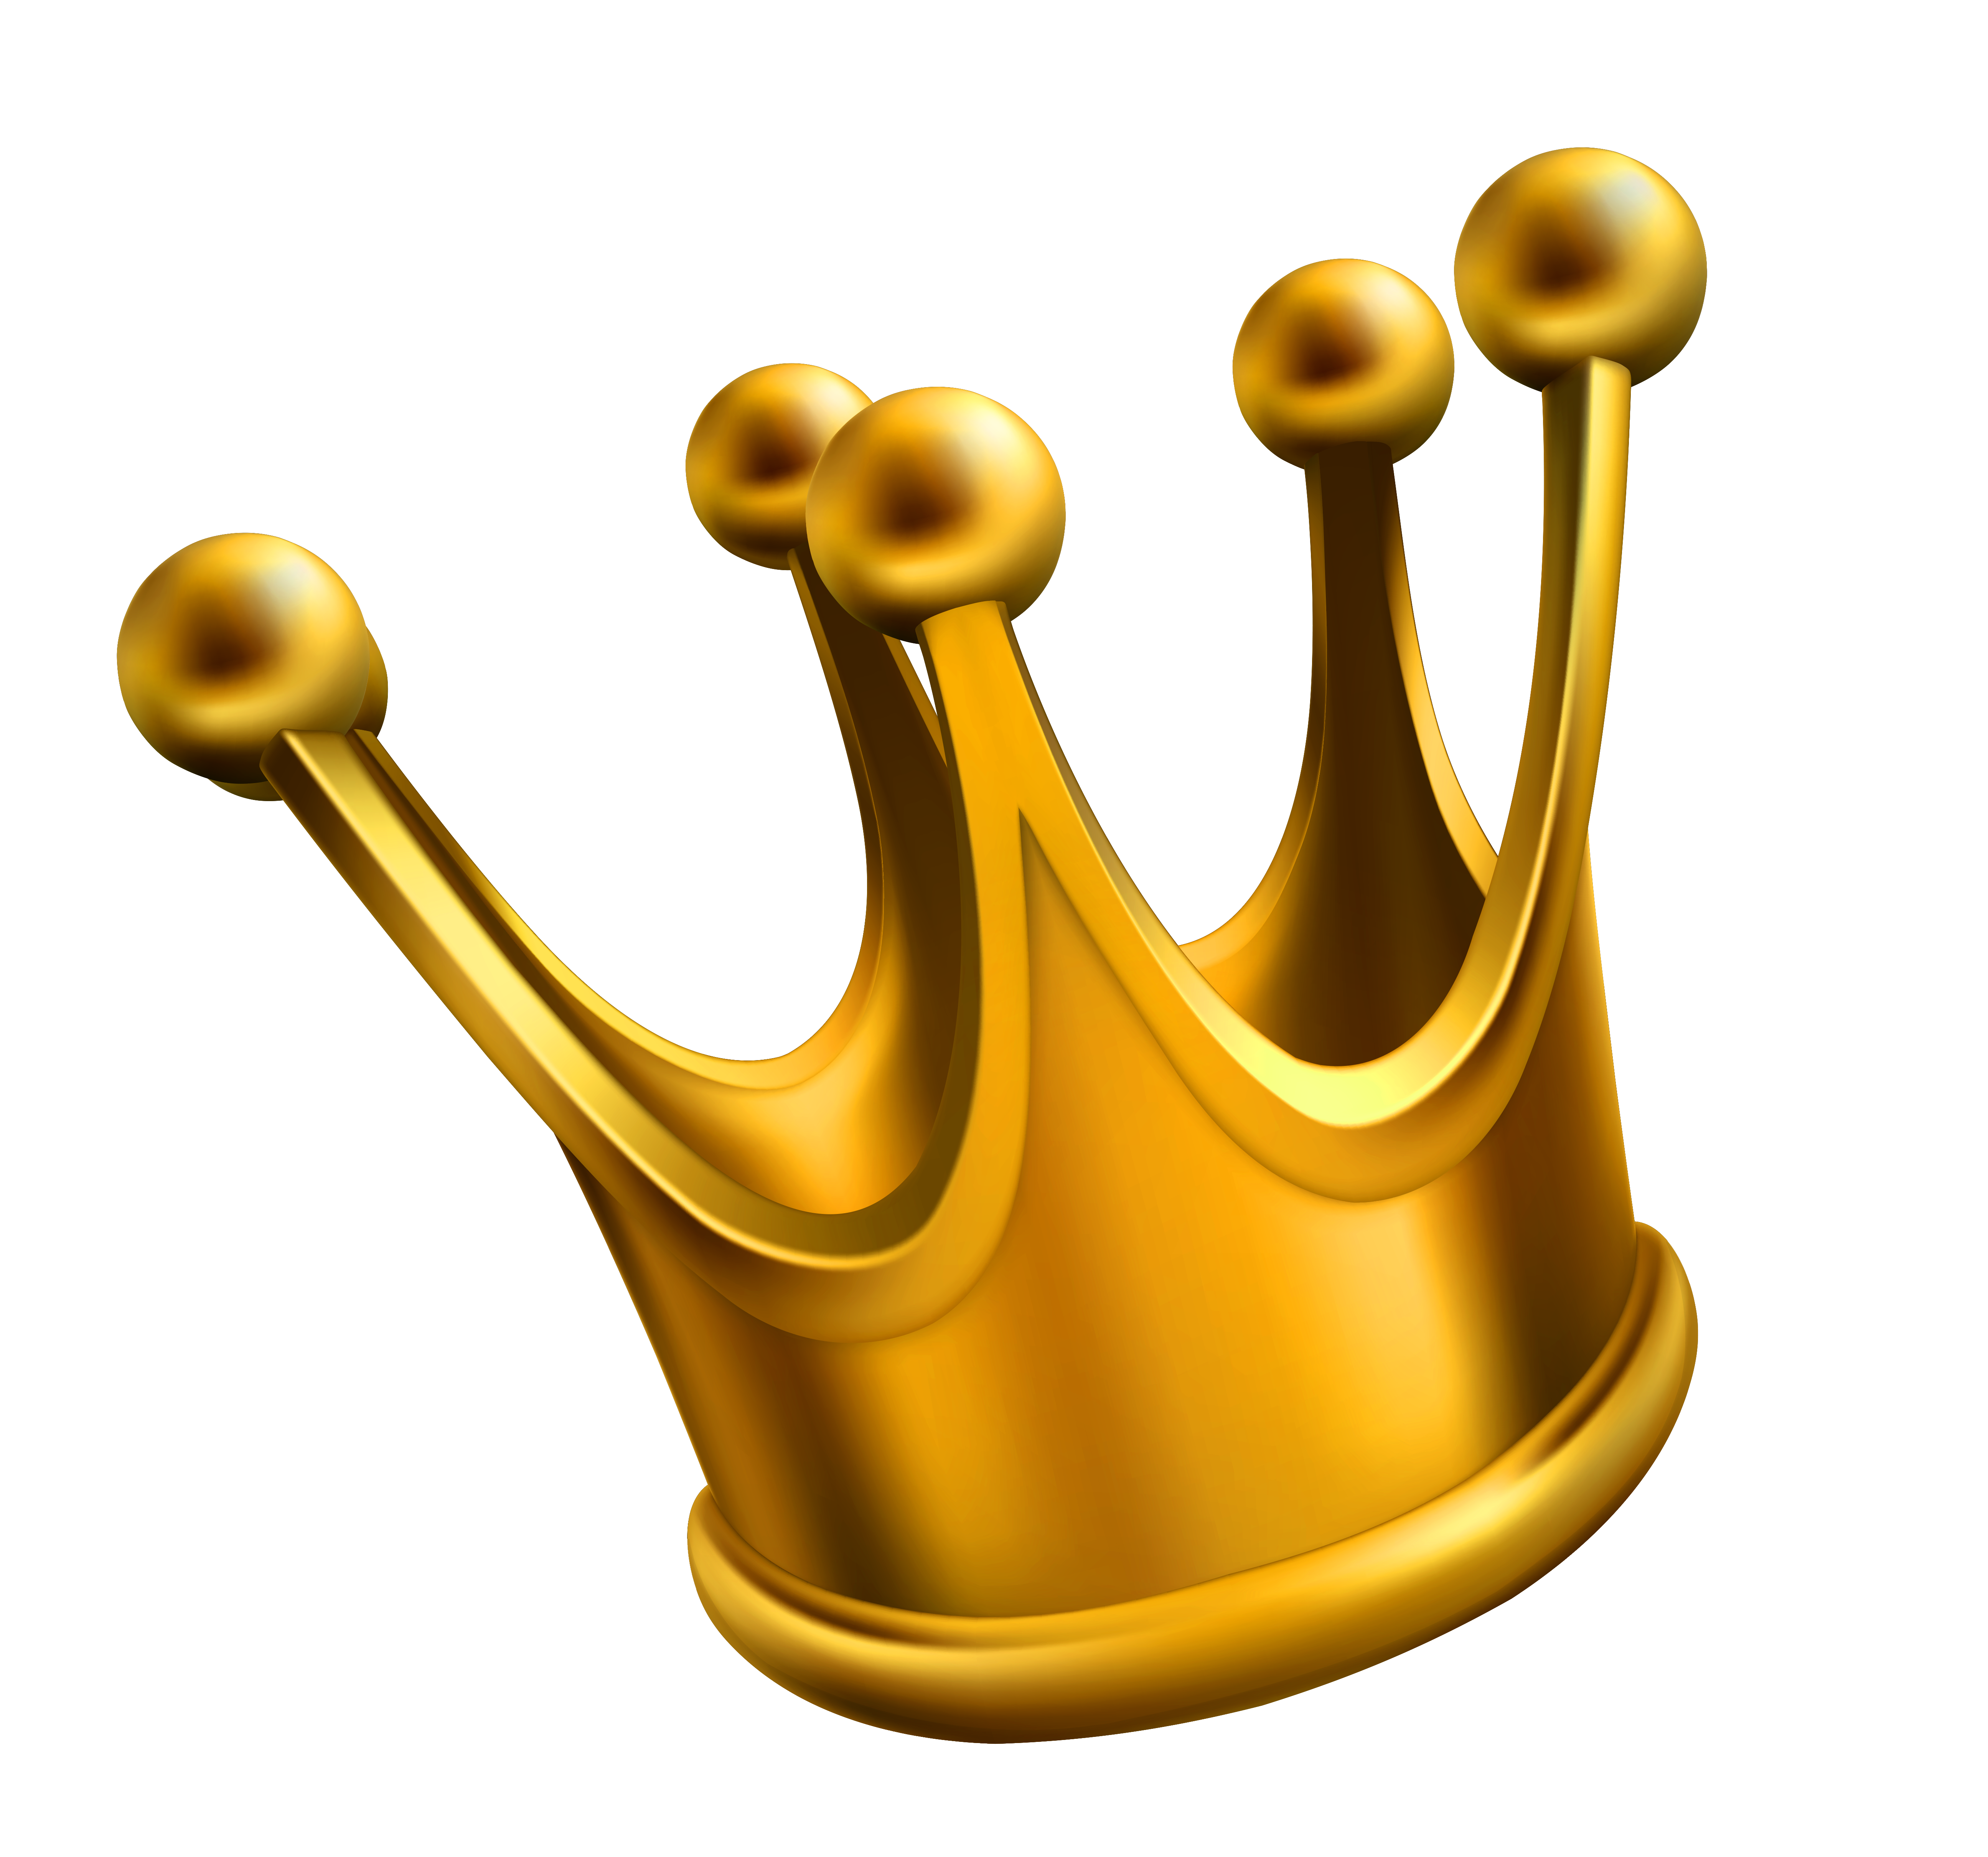 King Crown Images Free | Free download on ClipArtMag